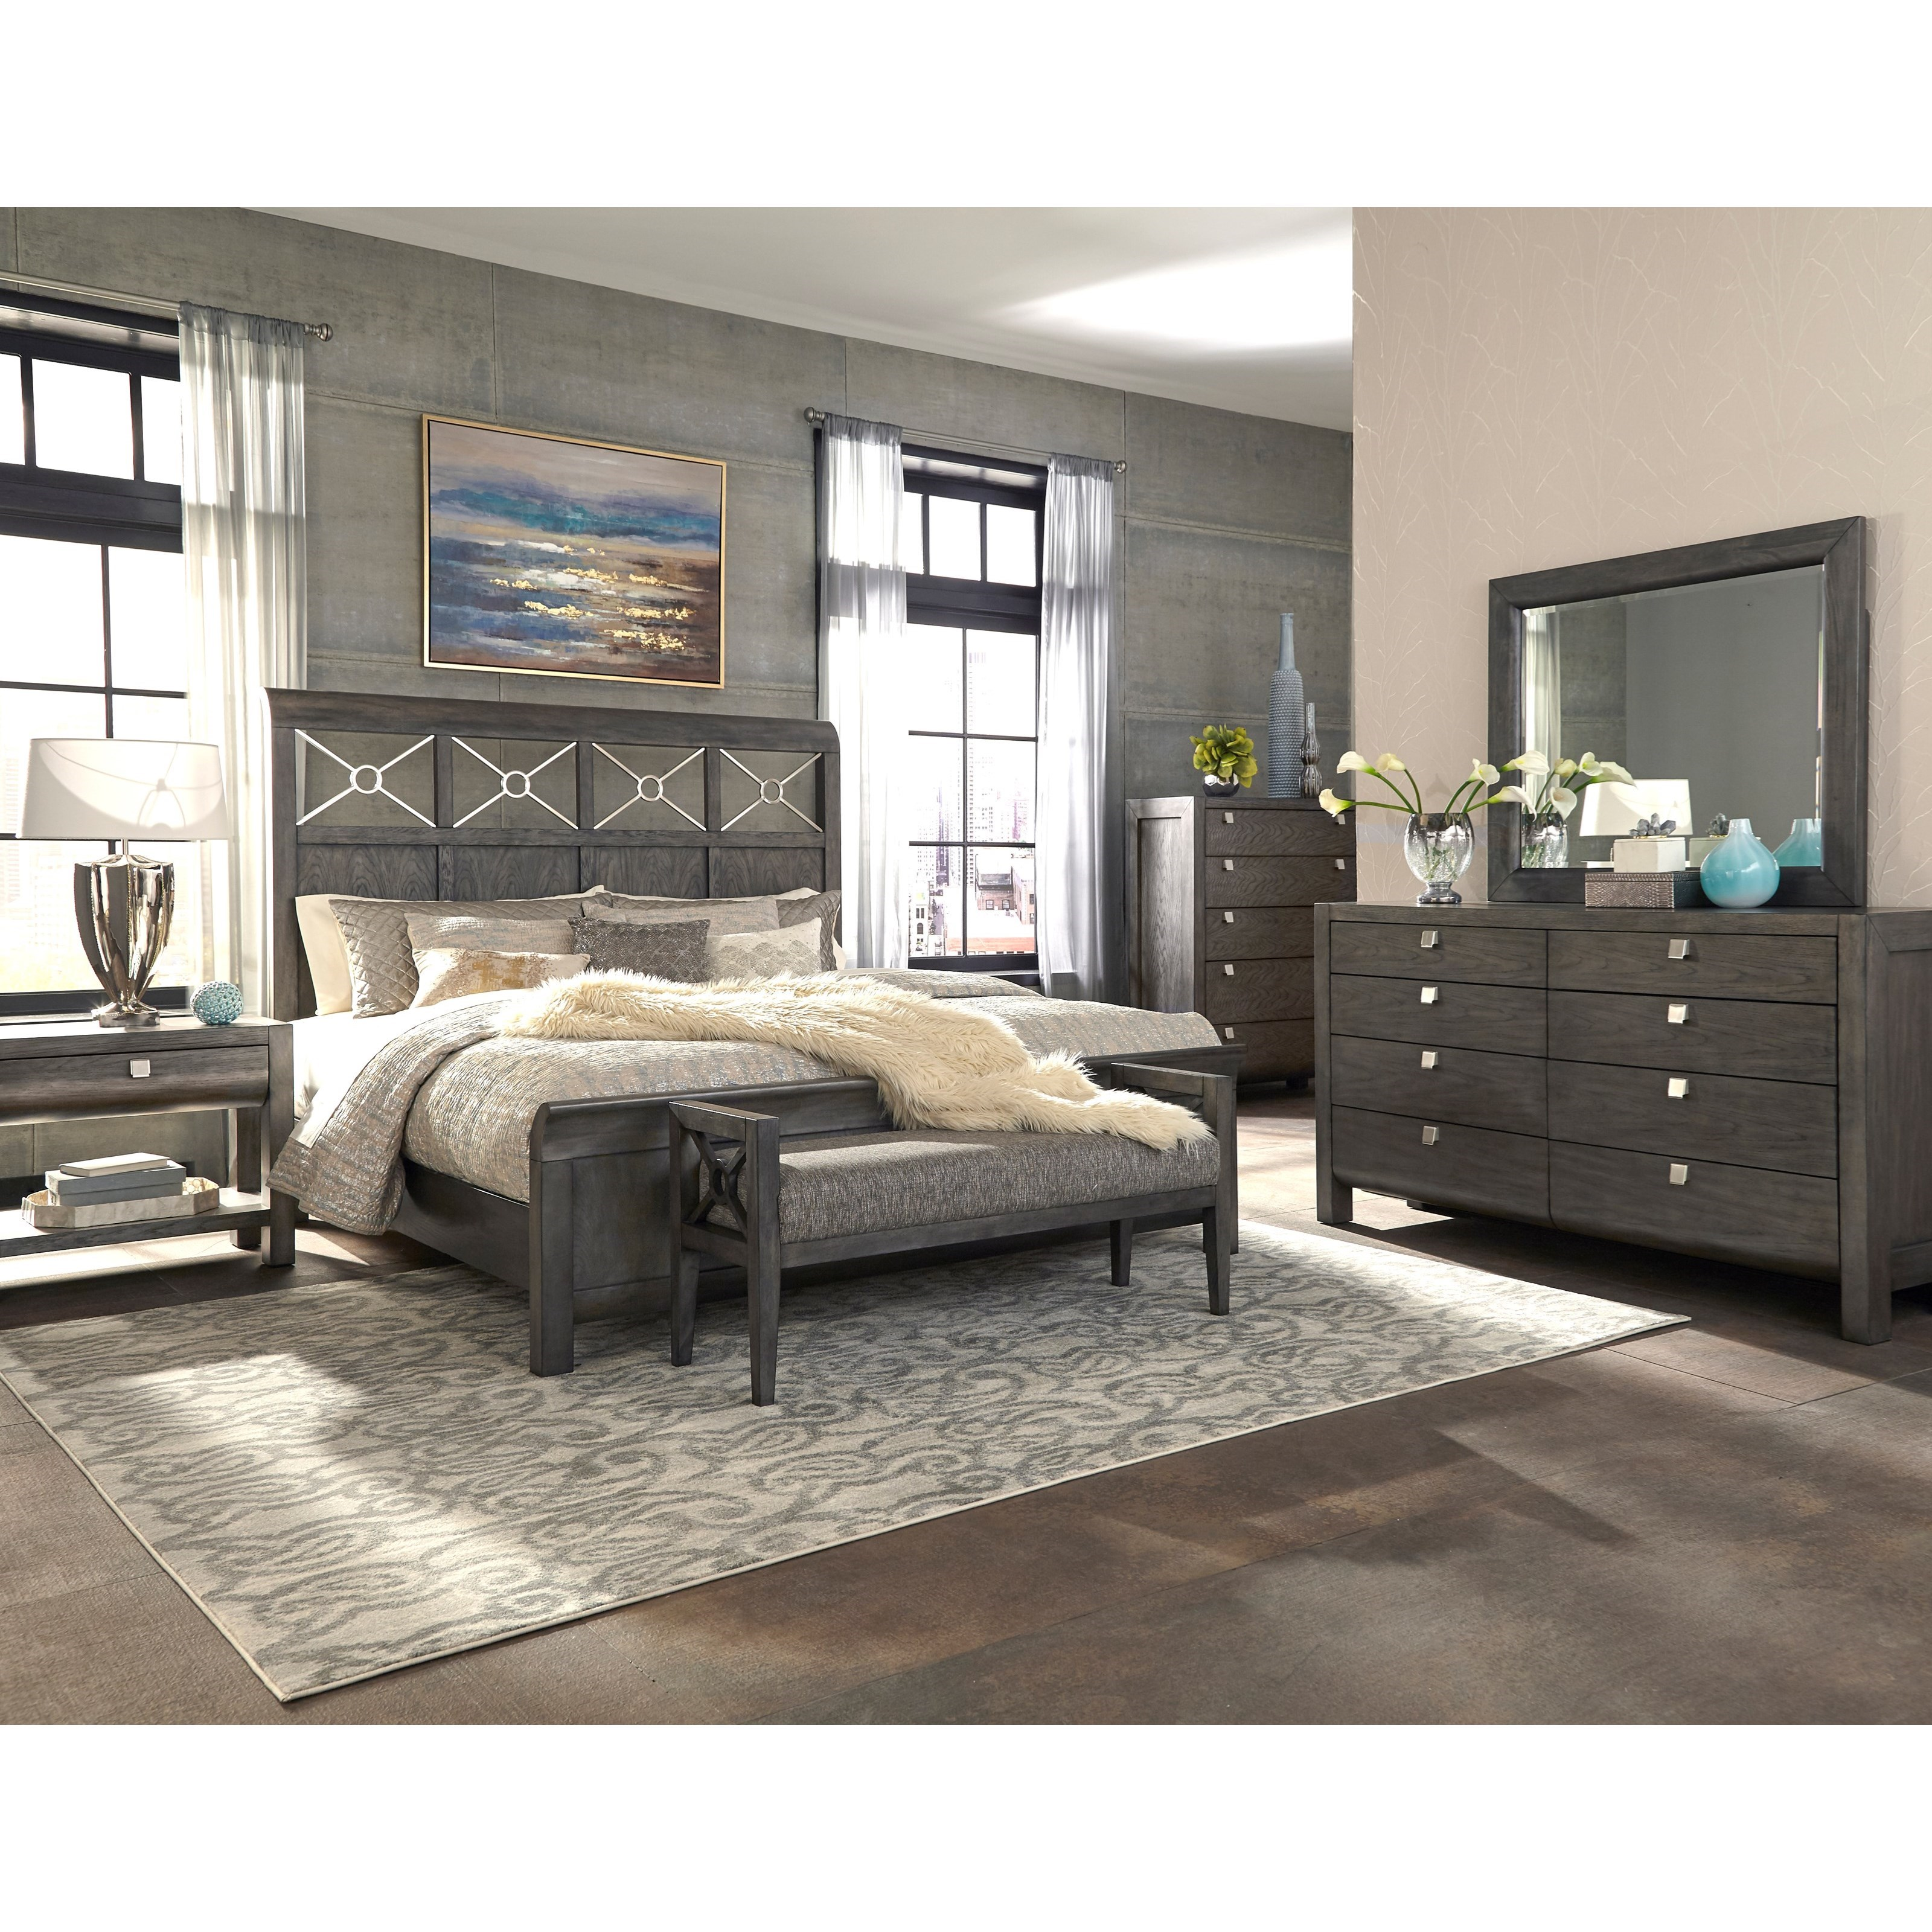 Trisha Yearwood Home Collection by Klaussner Music City CK Bedroom Group -  Item Number: 925